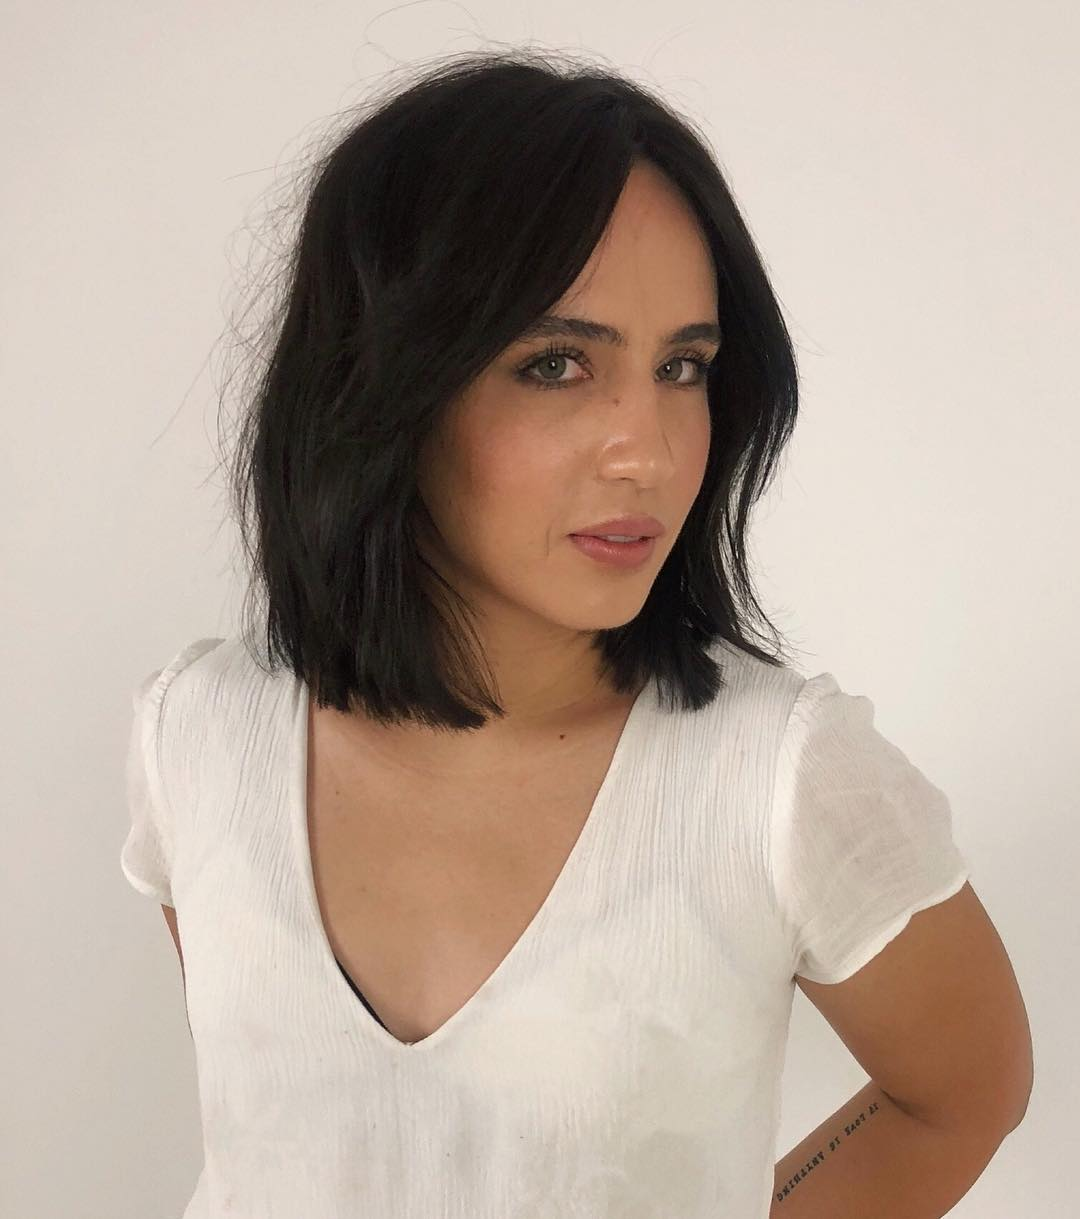 Dark Brunette One Length Lob with Long Curtain Bangs and Textured Ends Medium Length Fall Hairstyle